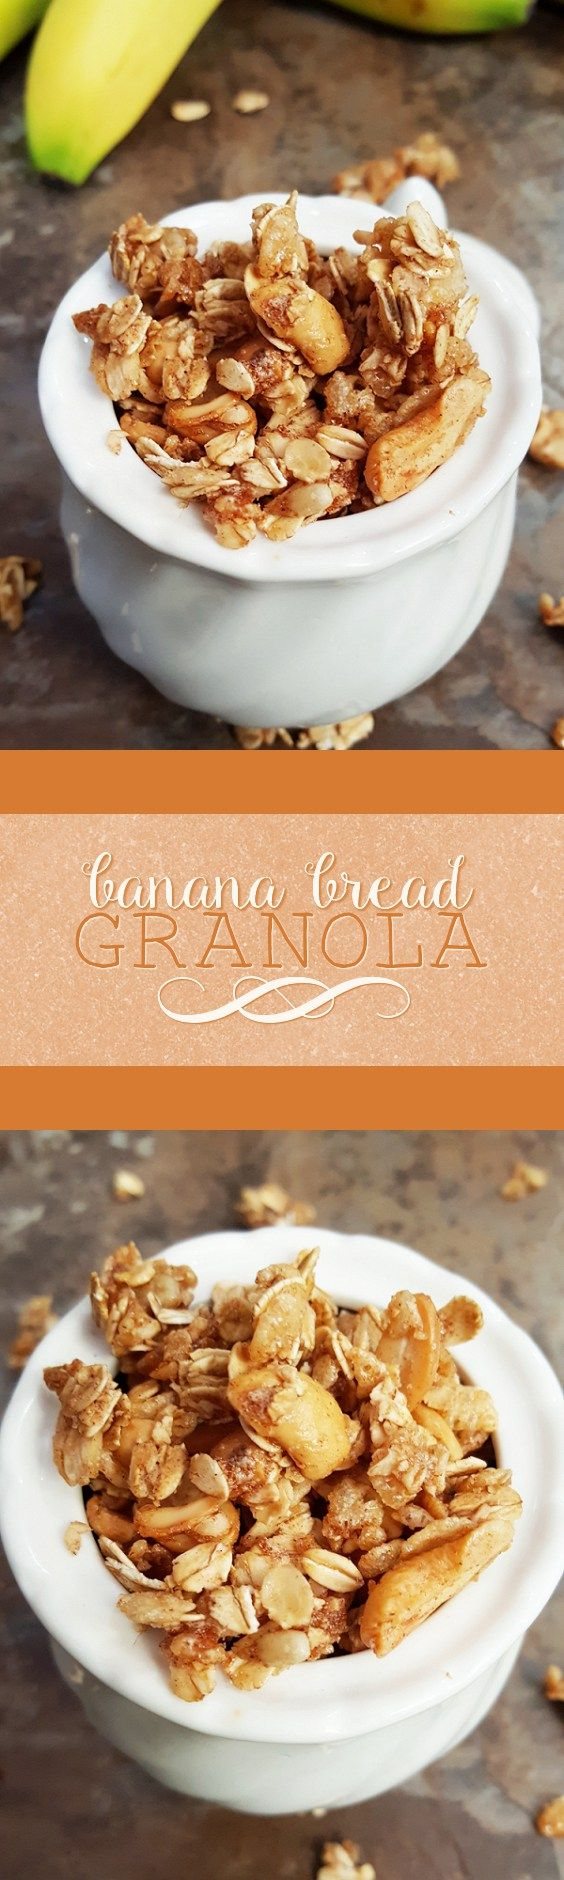 {Healthy, Low Calorie, Vegan} Start your day with a bowl of this crunchy banana bread granola! Made without butter, oil, or refined sugar, it's all the flavor of banana bread in delicious granola form!